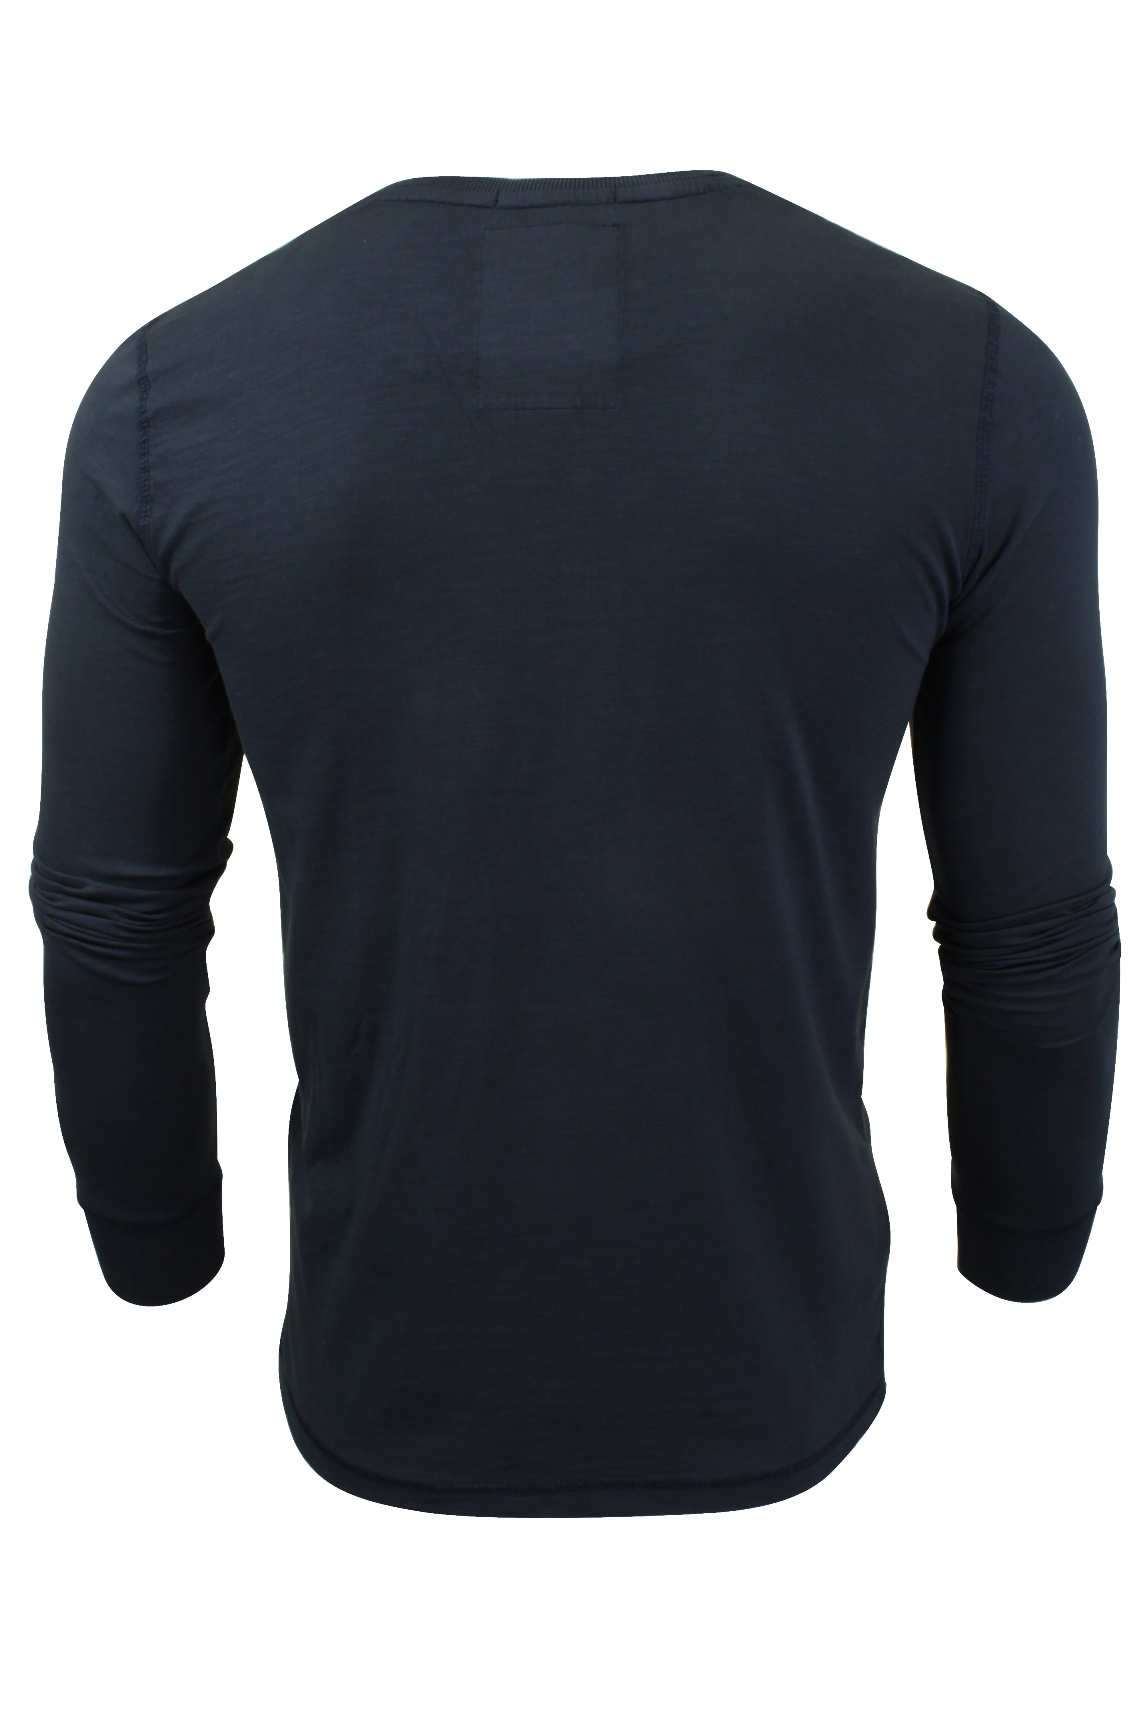 Mens-Grandad-T-Shirt-by-Tokyo-Laundry-039-Lawton-Cove-039-Long-Sleeved thumbnail 11